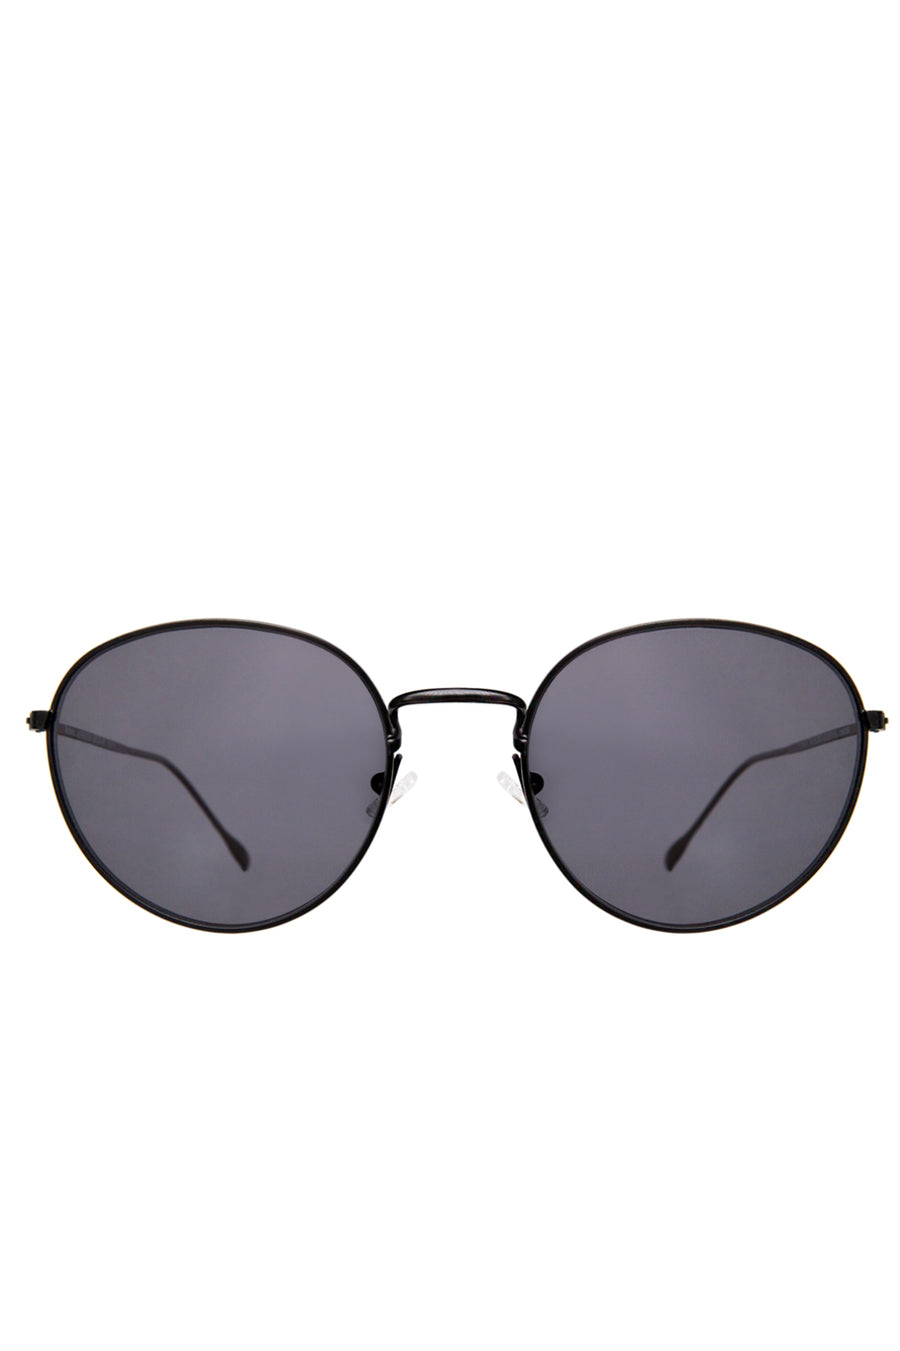 Jefferson 54 - Matte Black w/ Grey Flat Lenses - Pavilion